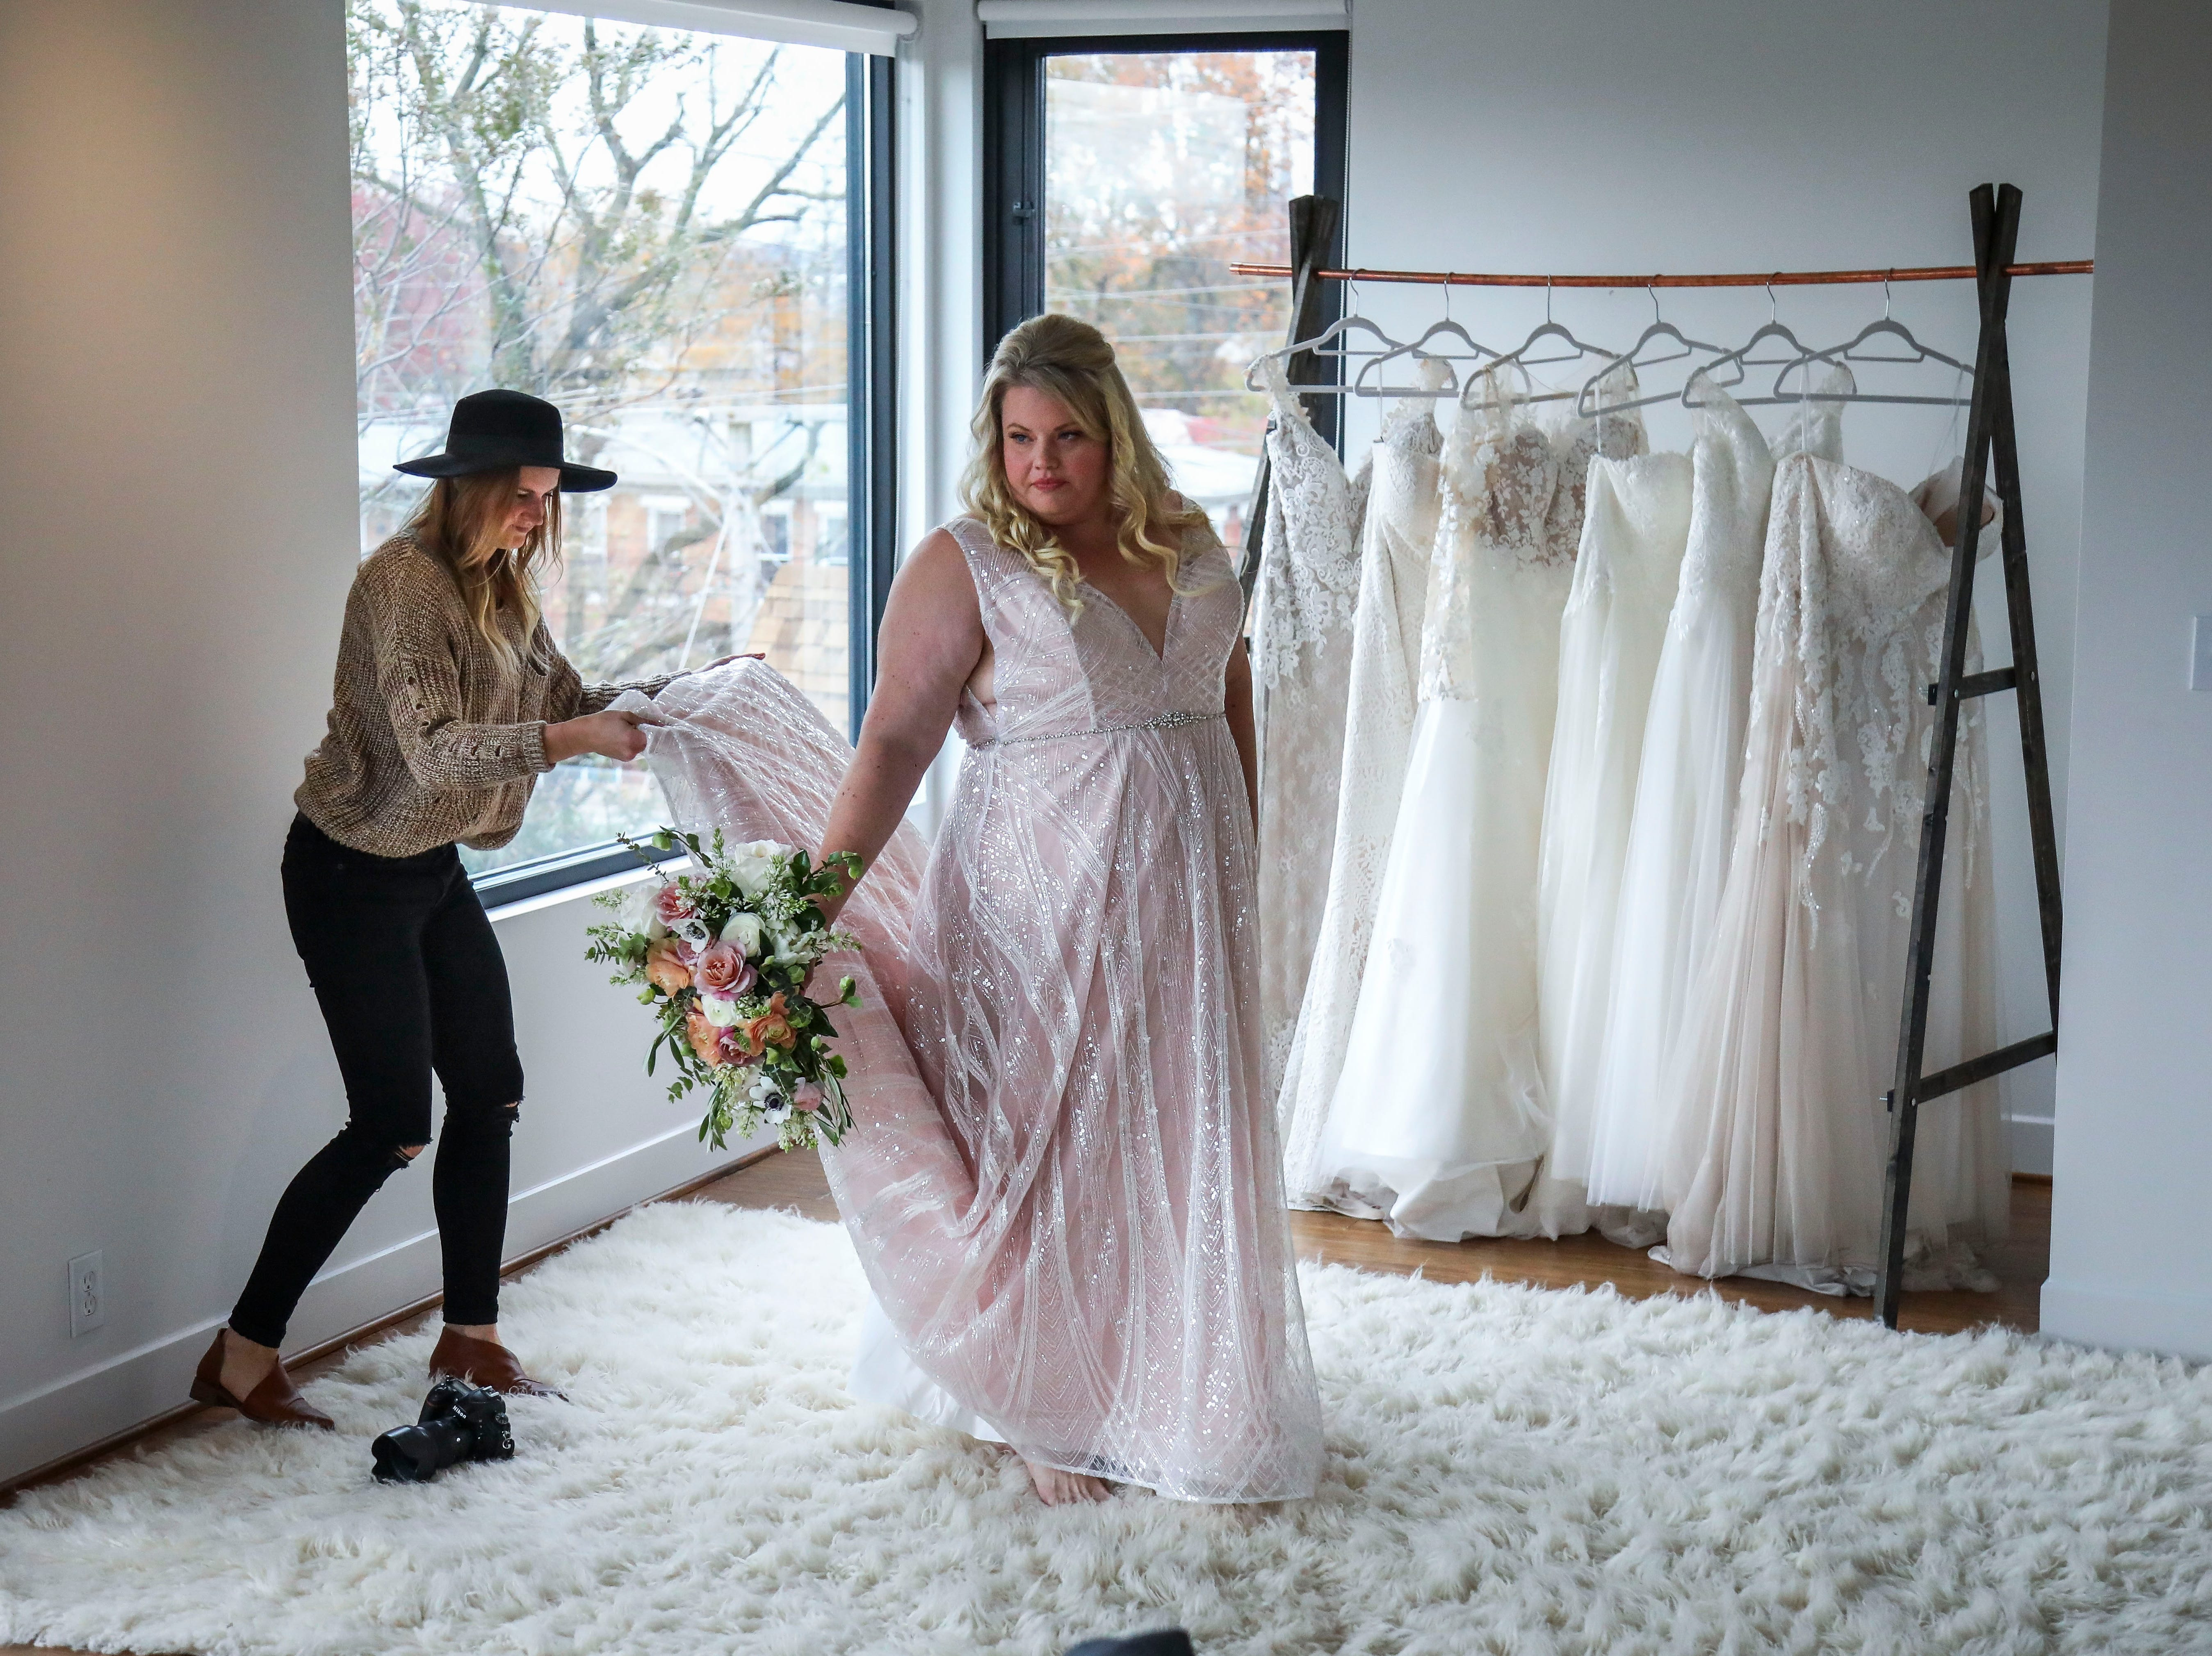 Susan Jordan of Love Hunters adjusts Misty Hair's Couture Closet Bridal dress during a photoshoot in NuLu in Louisville, Ky. on Monday, November 12, 2018. Plus-sizes make up only 16 percent of all apparel sales, though, 67% of women in the United States wear a size 14 or above. 